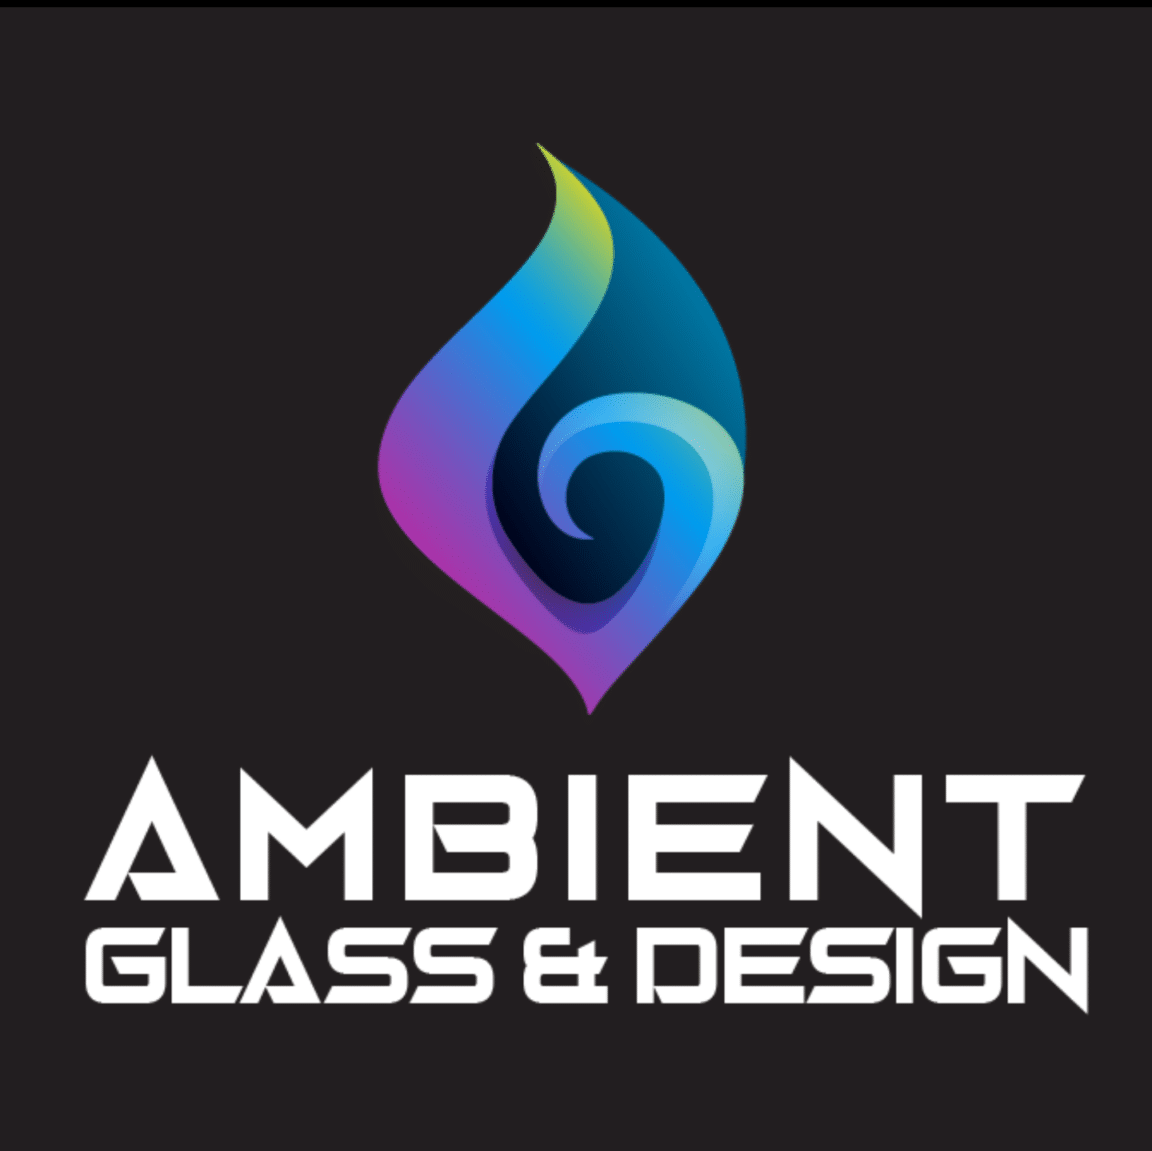 Ambient Glass and Design